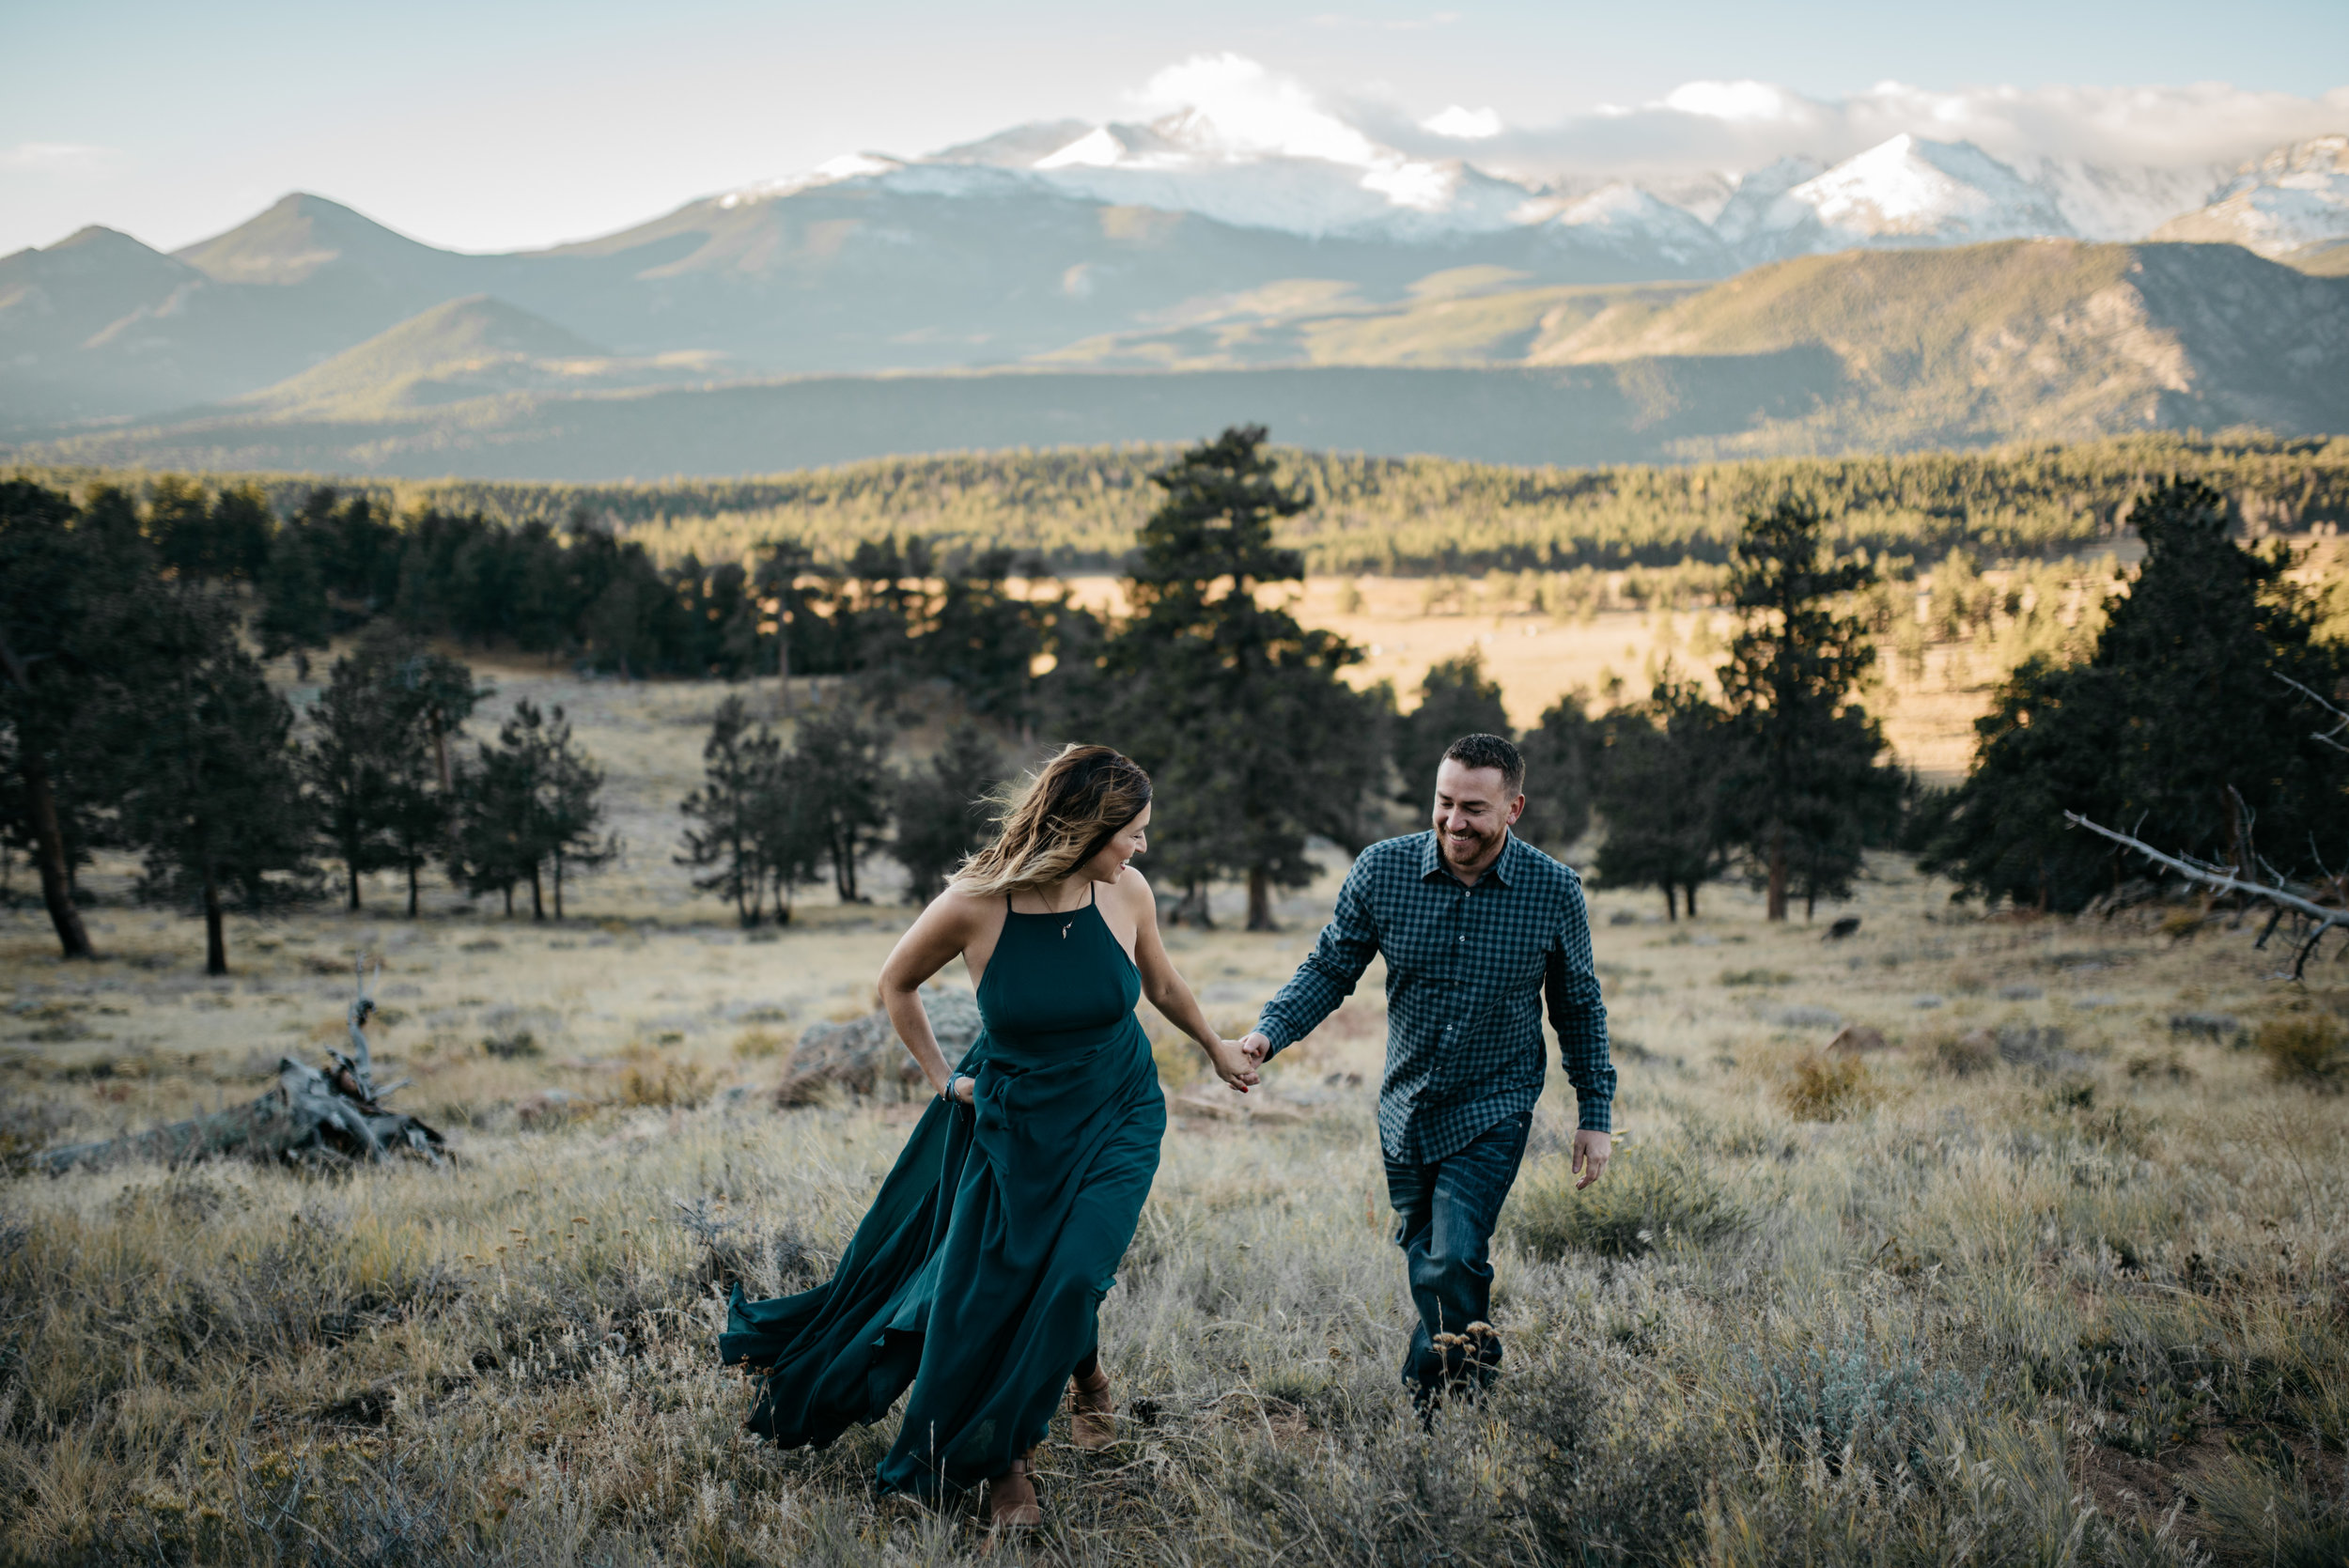 Adventure engagement session photographer based in Denver, Colorado. Destination adventure wedding & elopement photographer.